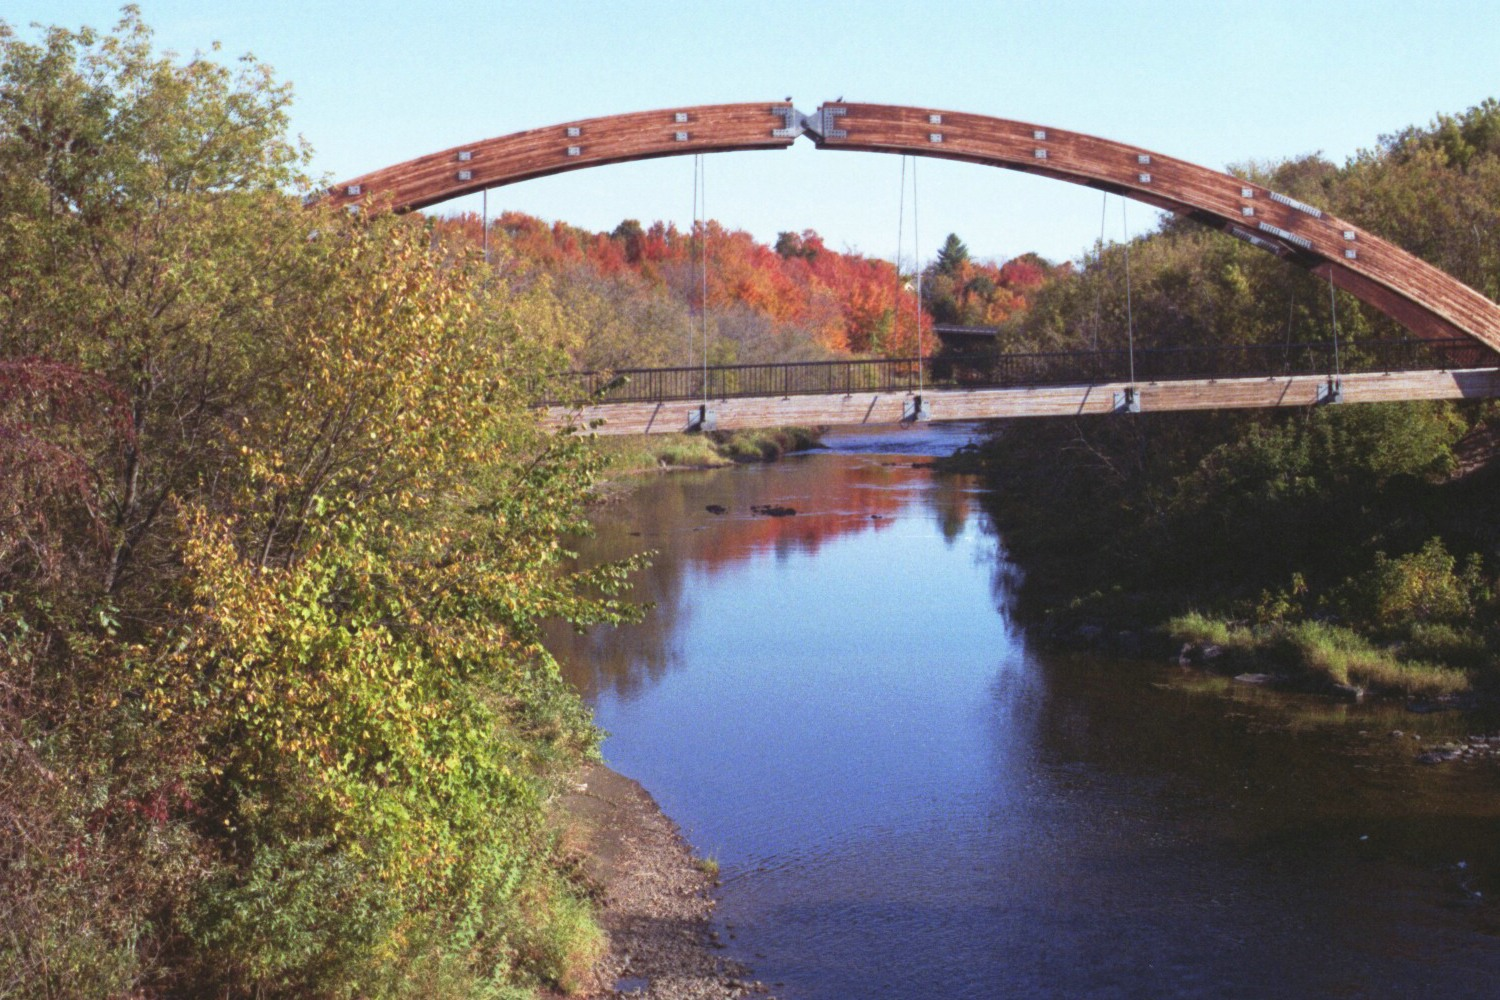 The Gateway Crossings Bridge connects Historic Market Square to a very special nature walk along the Meduxnekeag River.